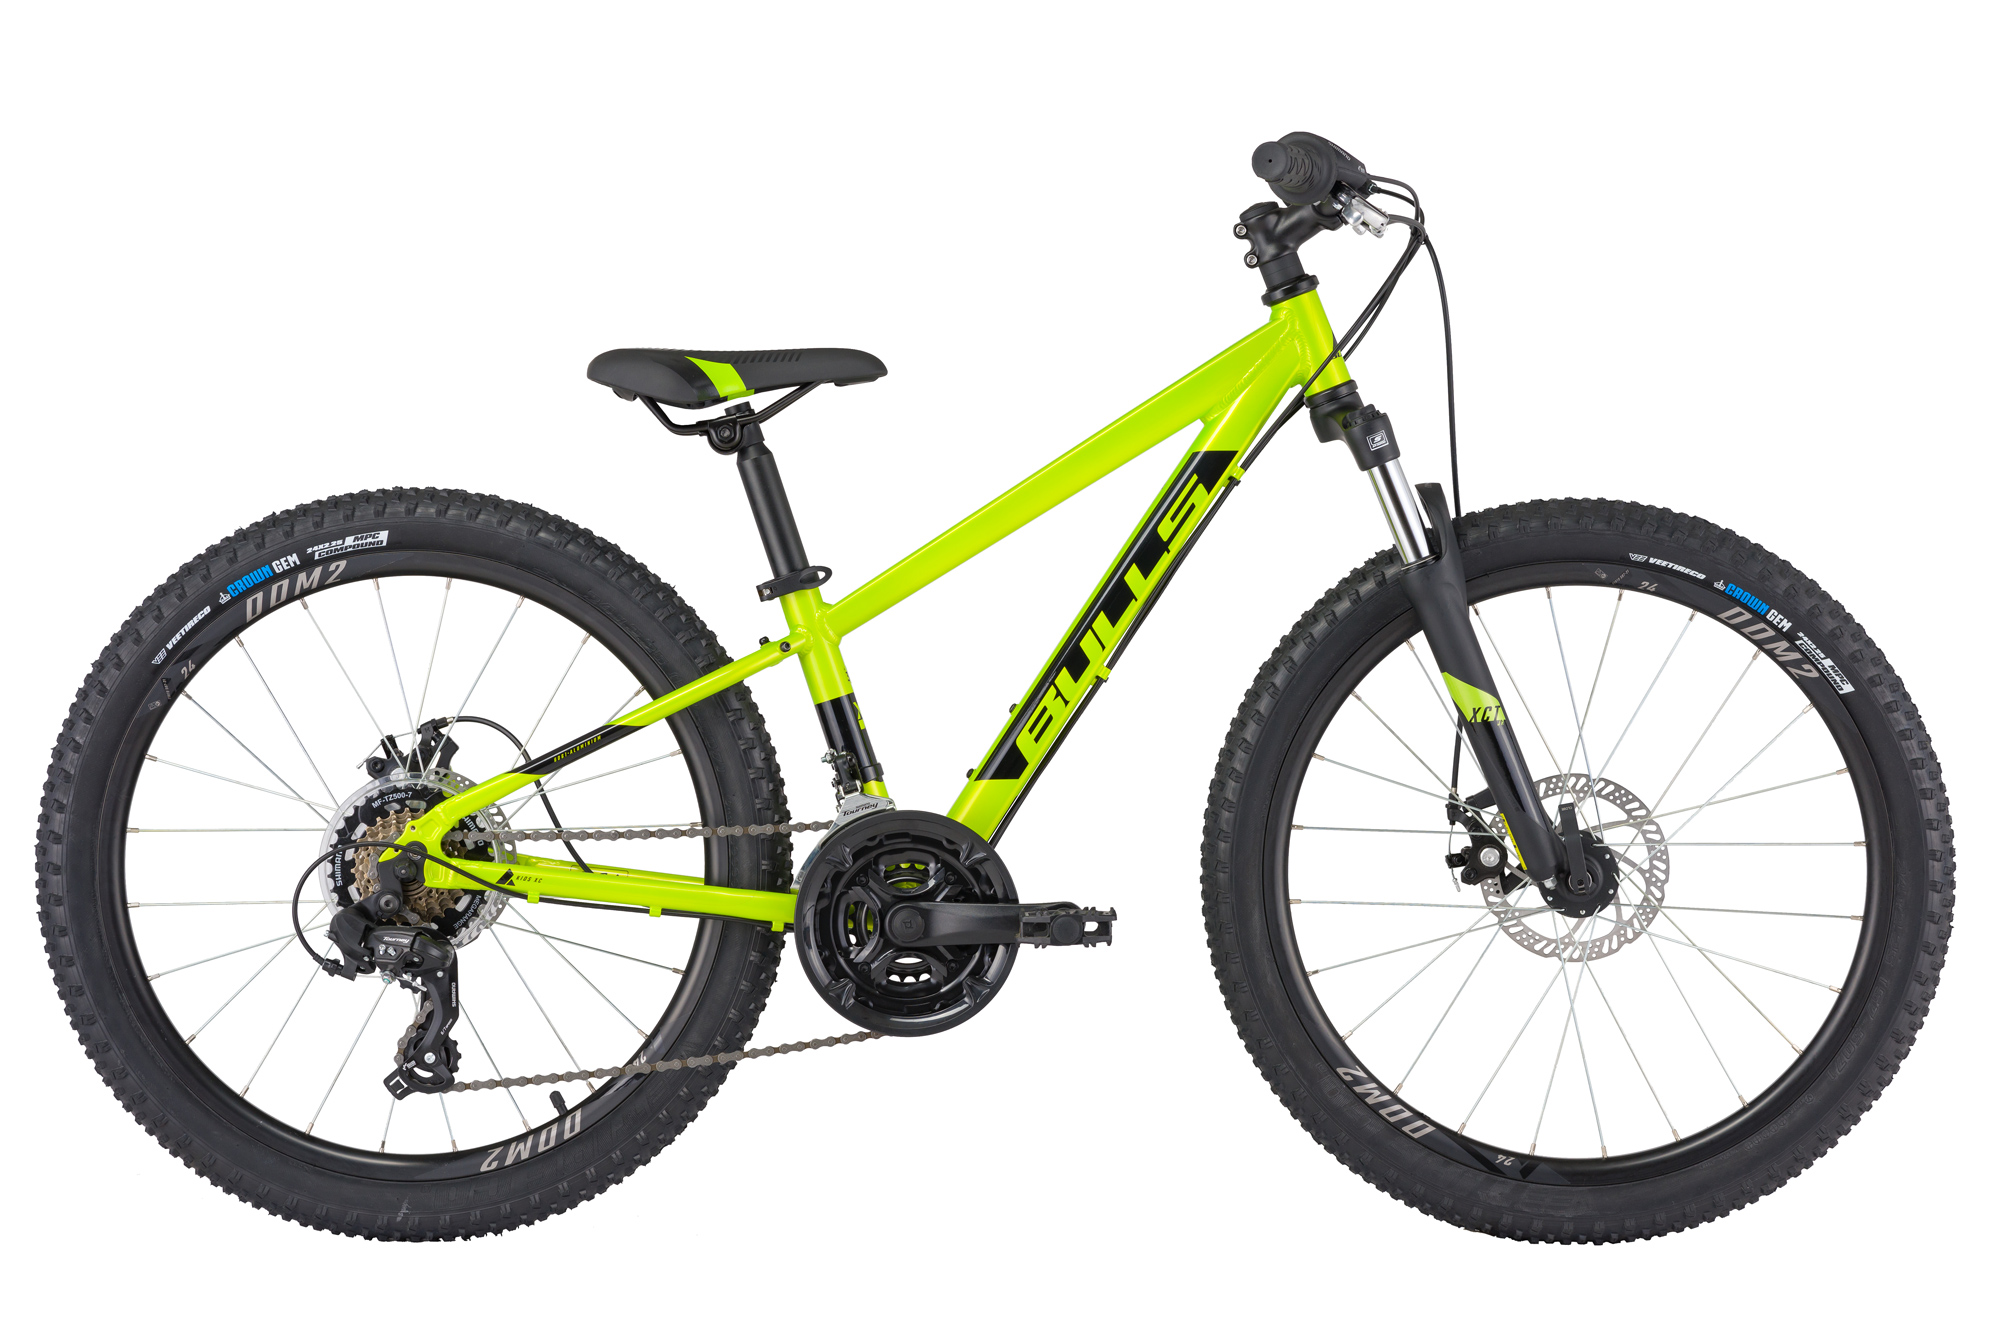 BULLS Tokee 24 Disc - Jugend MTB  lime - 2021